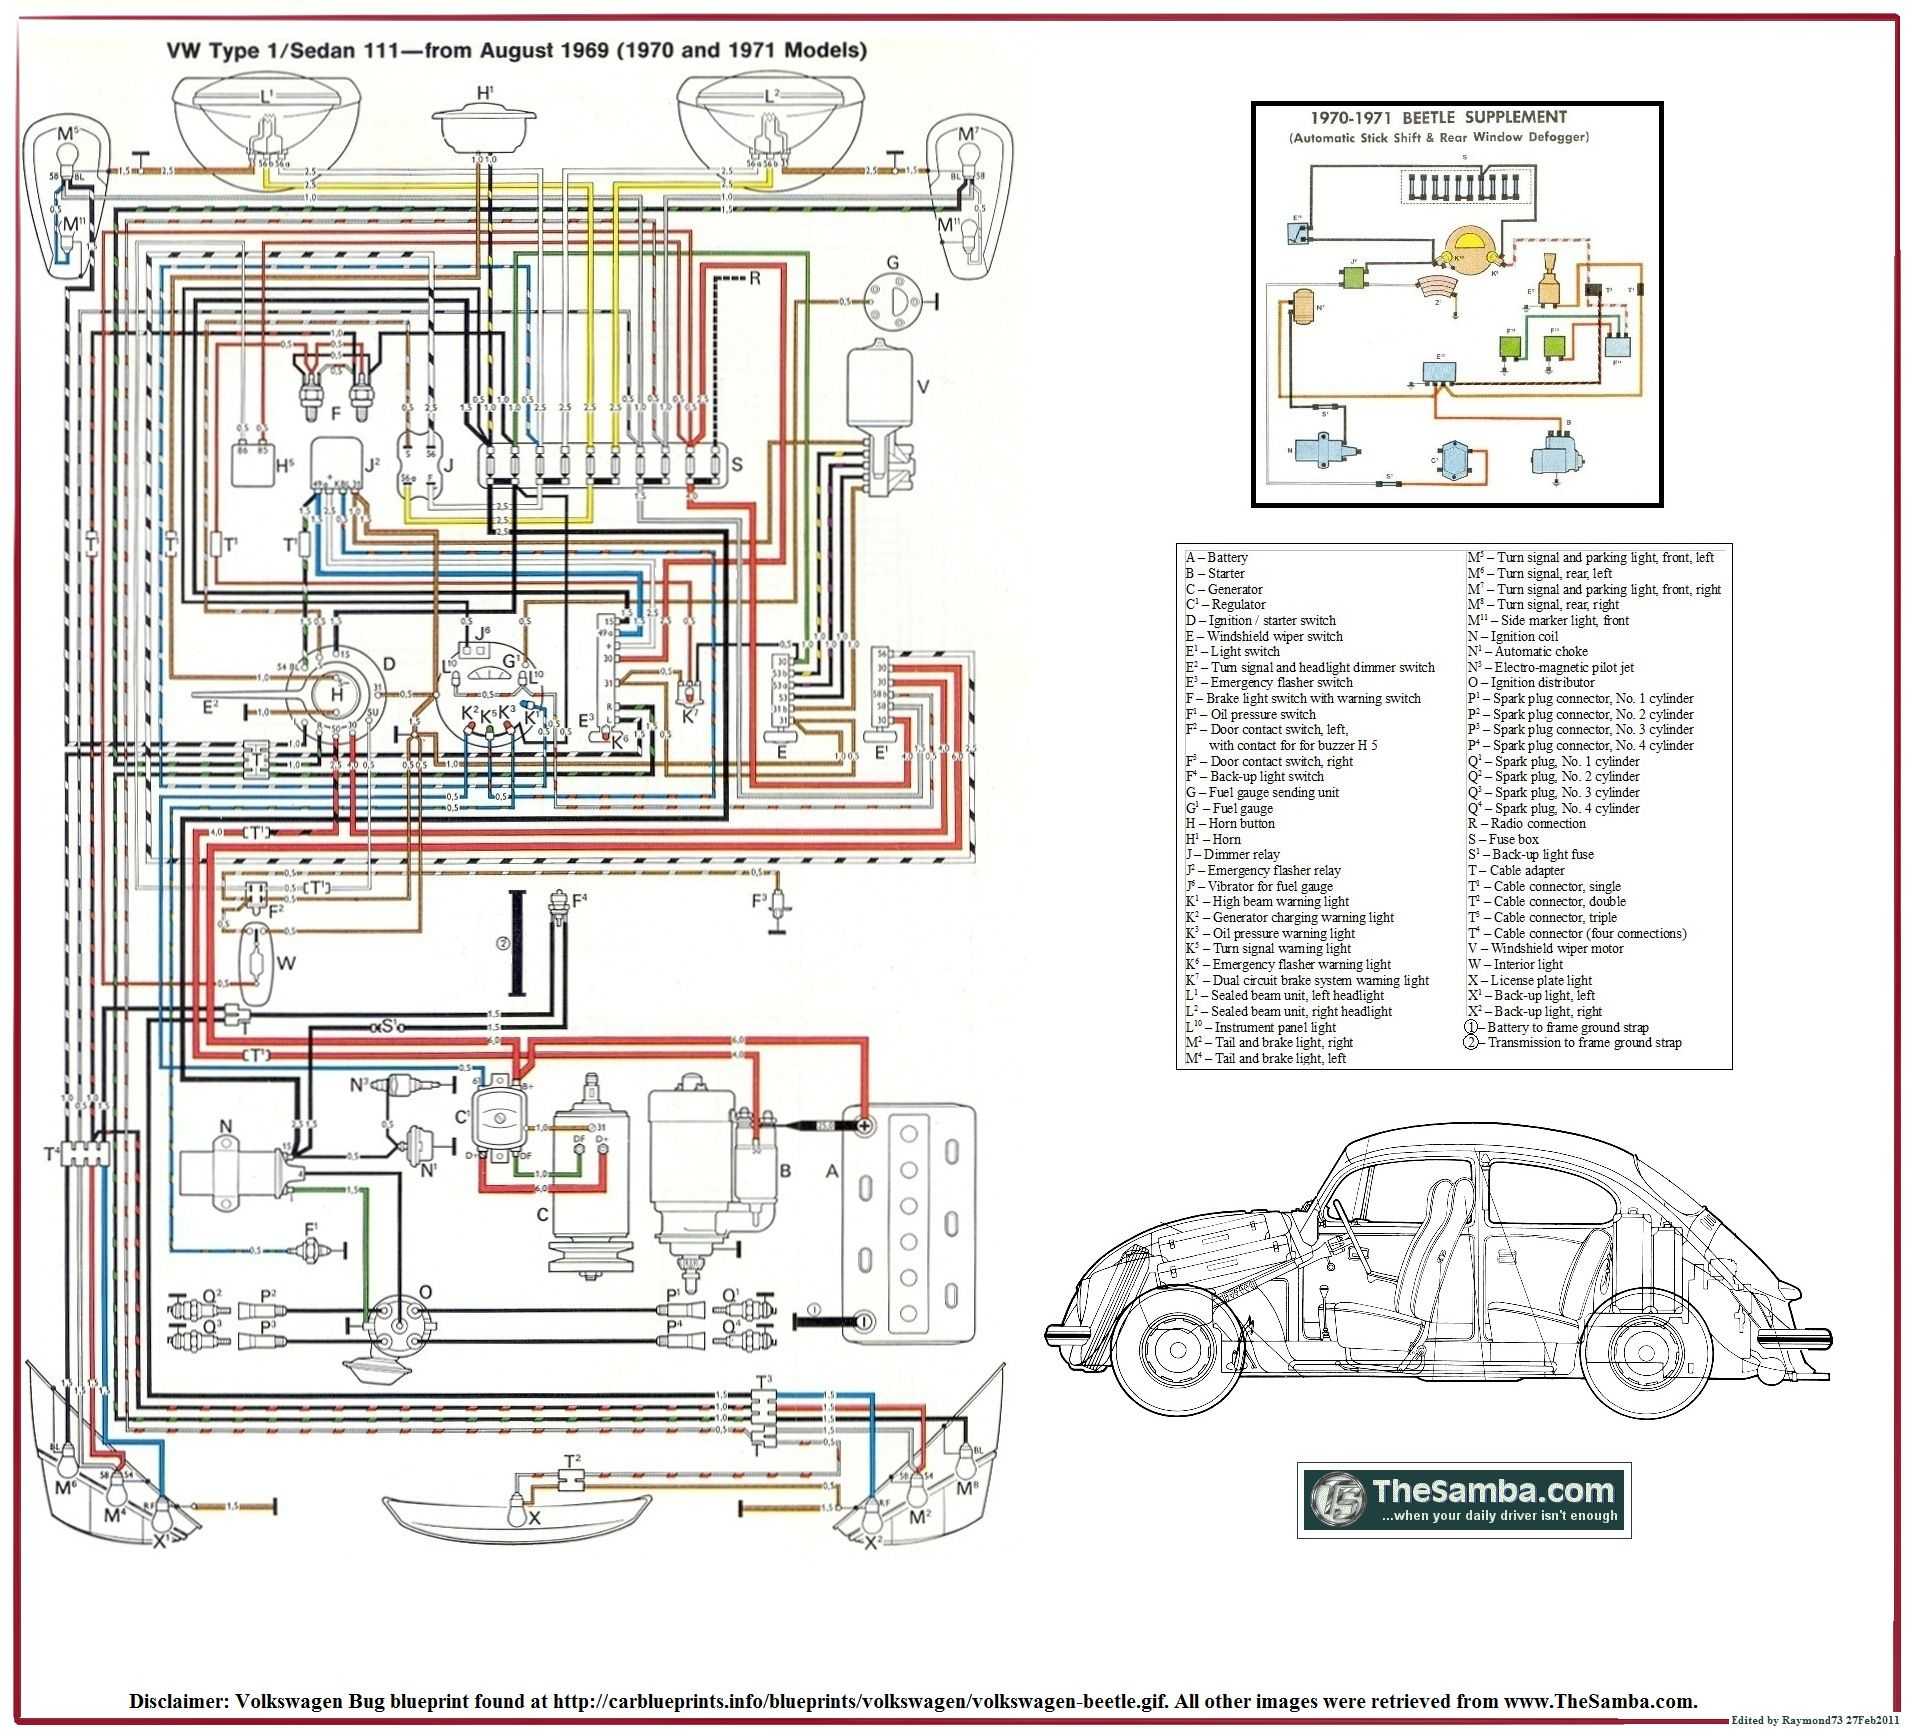 1999 Volkswagen Beetle Wiring Diagram vw beetle starter ... on